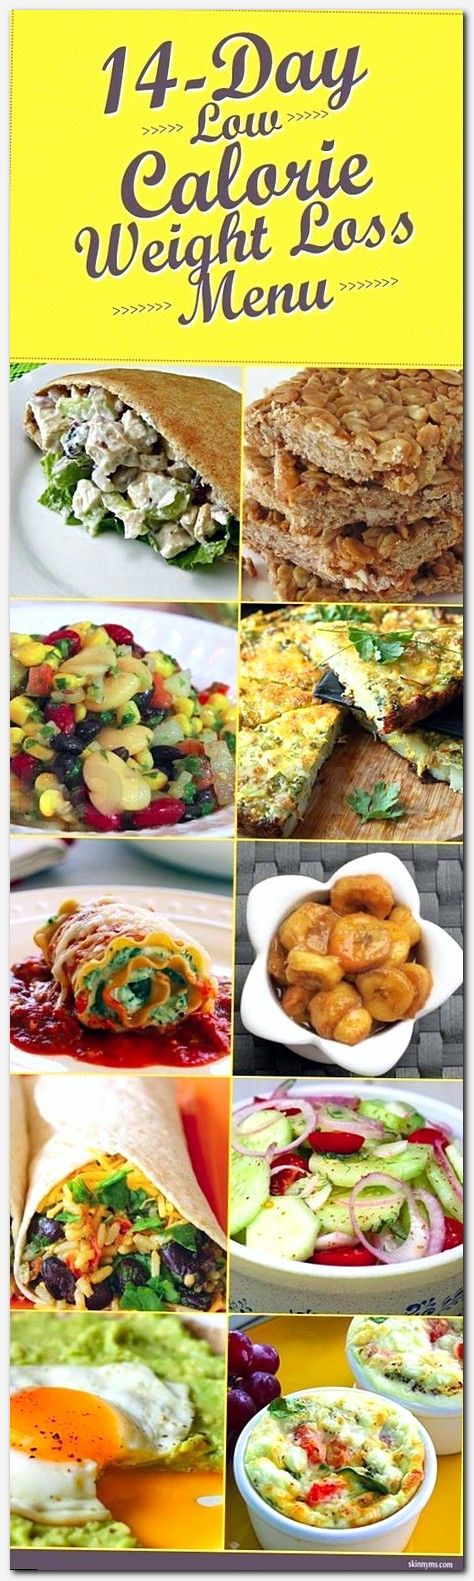 shock diet program, government eating guidelines, the grapefruit diet menu, which yoga help to reduce weight, lose 4 pounds a week diet plan, healthy quick weight loss, how to lose weight post delivery, give me a diet plan, best diet tips 2017, tips to successful weight loss, weight loss gyms near me, low salt foods list, low fat ernahrungsplan bodybuilding, meal plan for weight loss male, how can i reduce my weight after delivery, weight loss through exercise